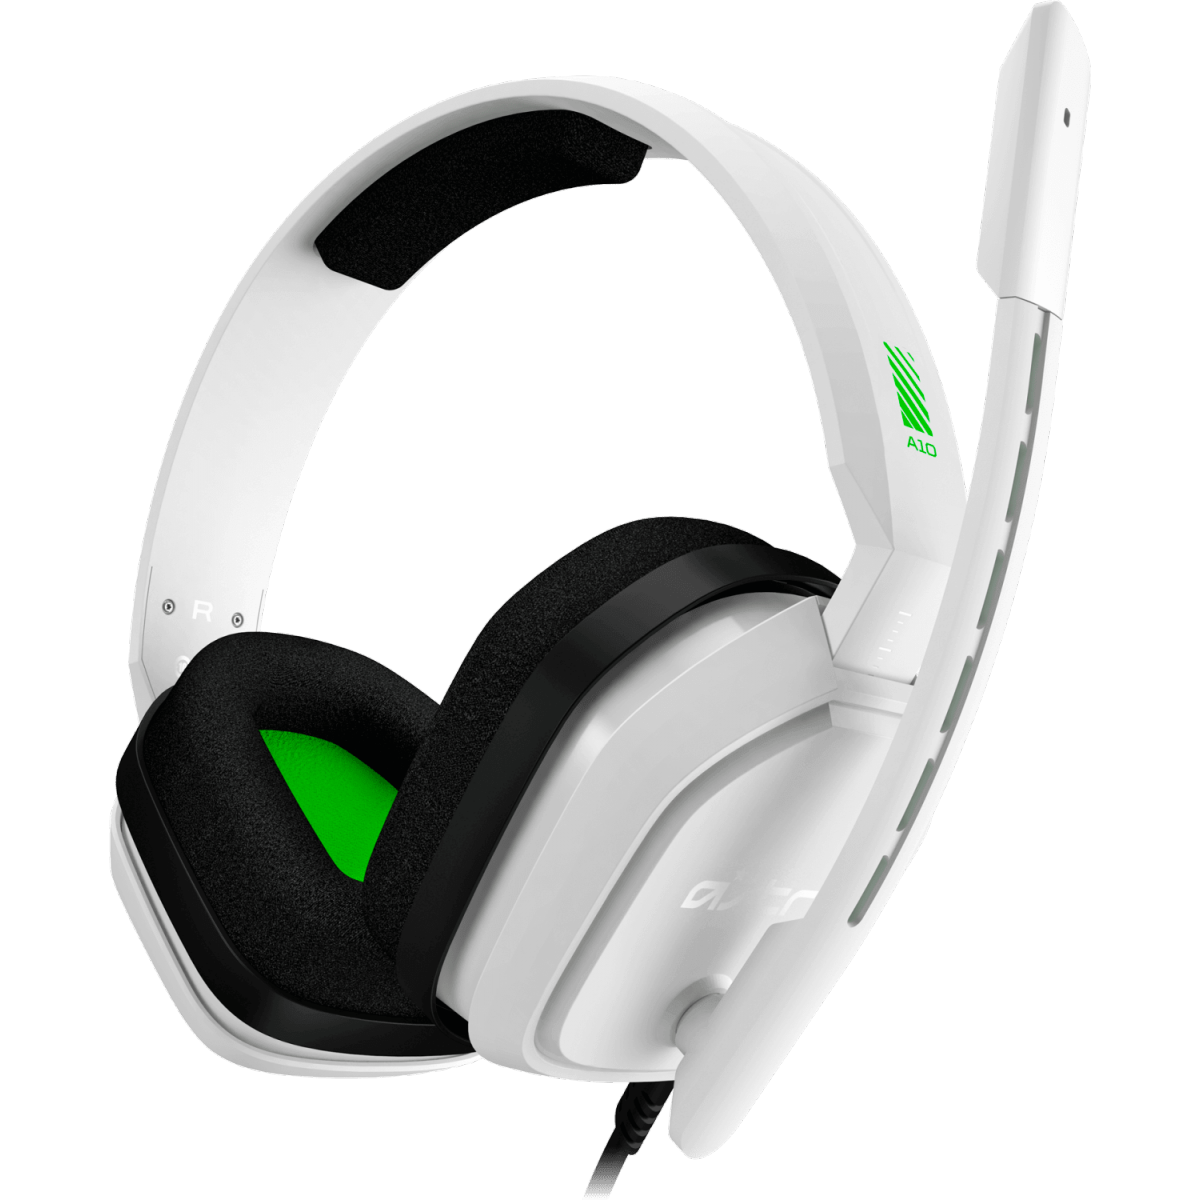 Headset Gamer Logitech Astro A10, White/Green, 939-001854